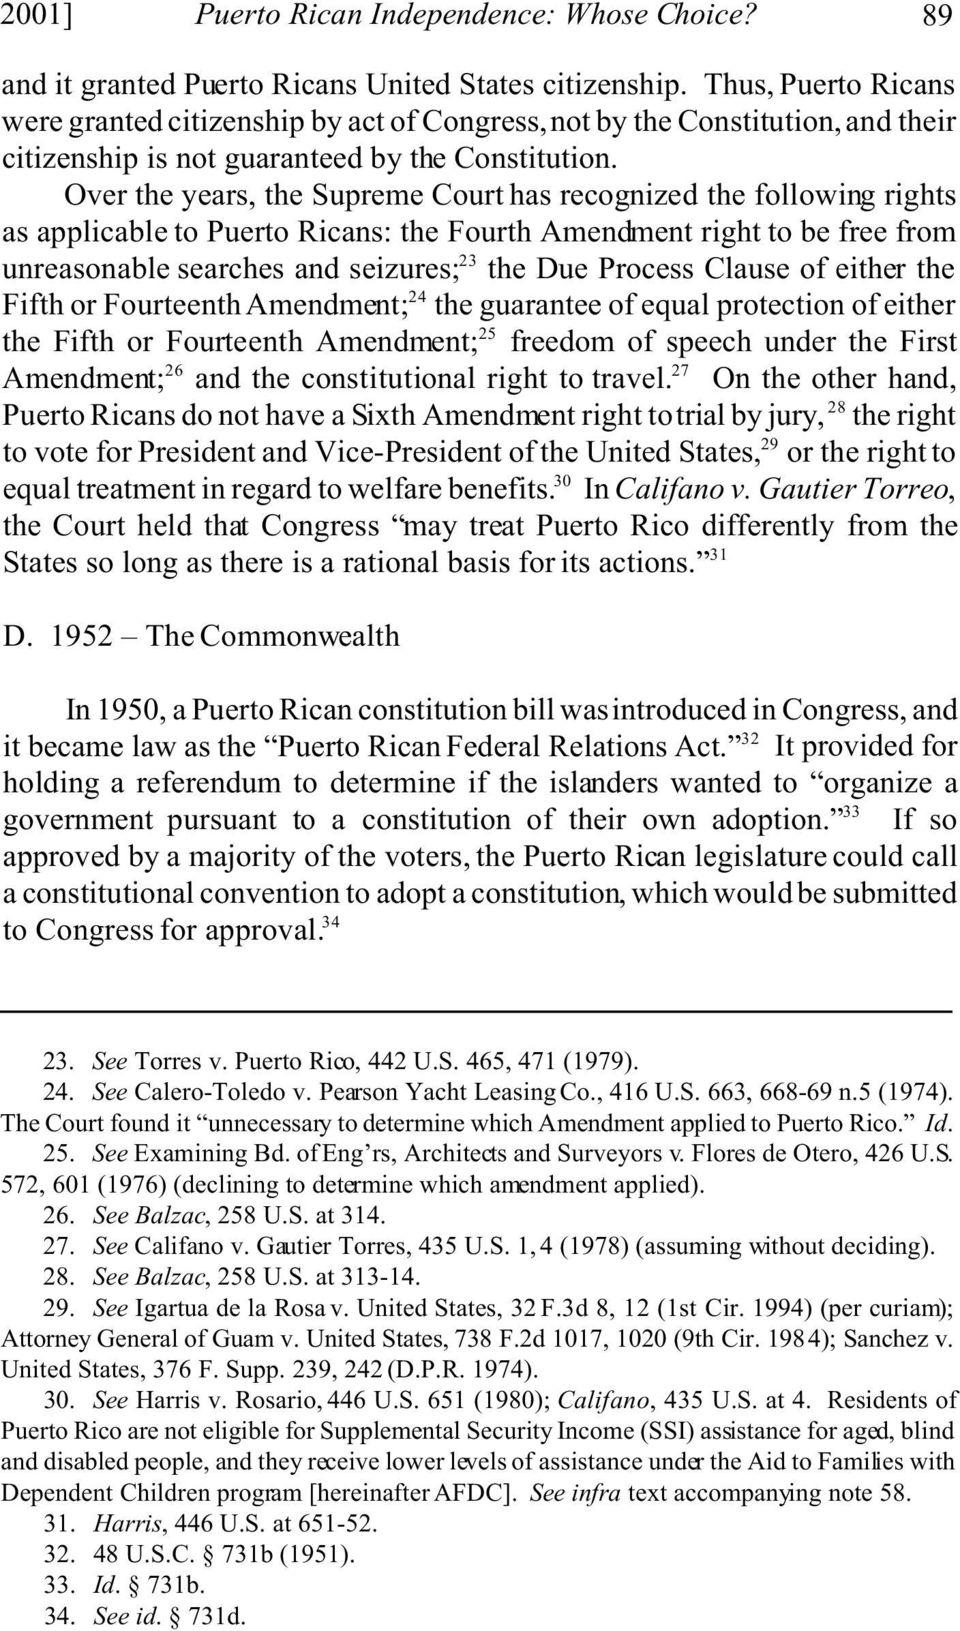 Over the years, the Supreme Court has recognized the following rights as applicable to Puerto Ricans: the Fourth Amendment right to be free from unreasonable searches and seizures; 23 the Due Process